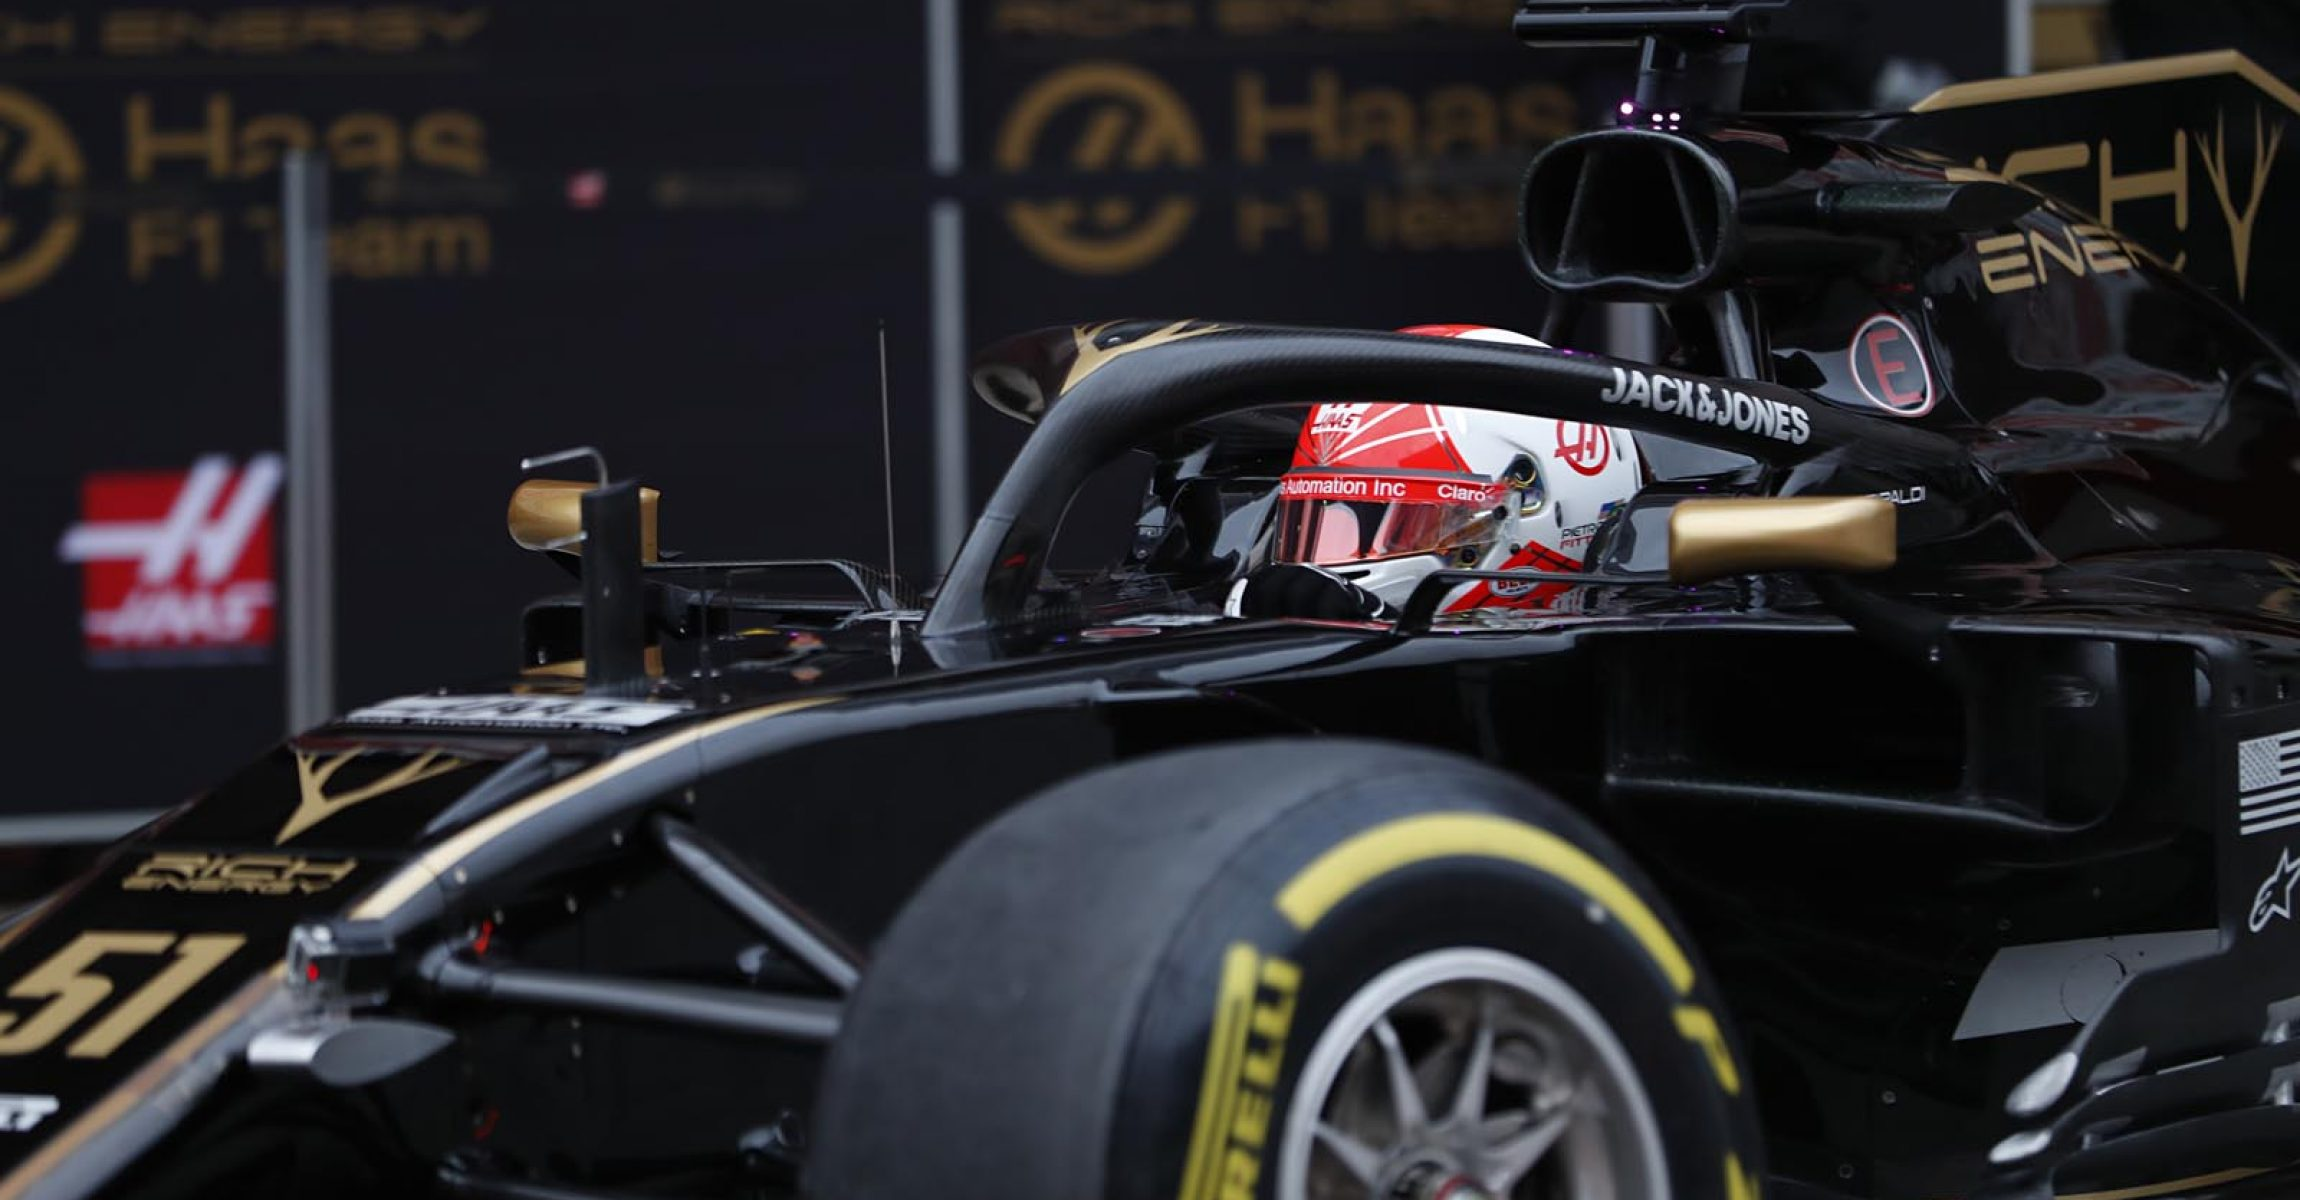 CIRCUIT DE BARCELONA-CATALUNYA, SPAIN - FEBRUARY 20: Pietro Fittipaldi, Haas VF-19 during the Barcelona February testing at Circuit de Barcelona-Catalunya on February 20, 2019 in Circuit de Barcelona-Catalunya, Spain. (Photo by Zak Mauger / LAT Images)